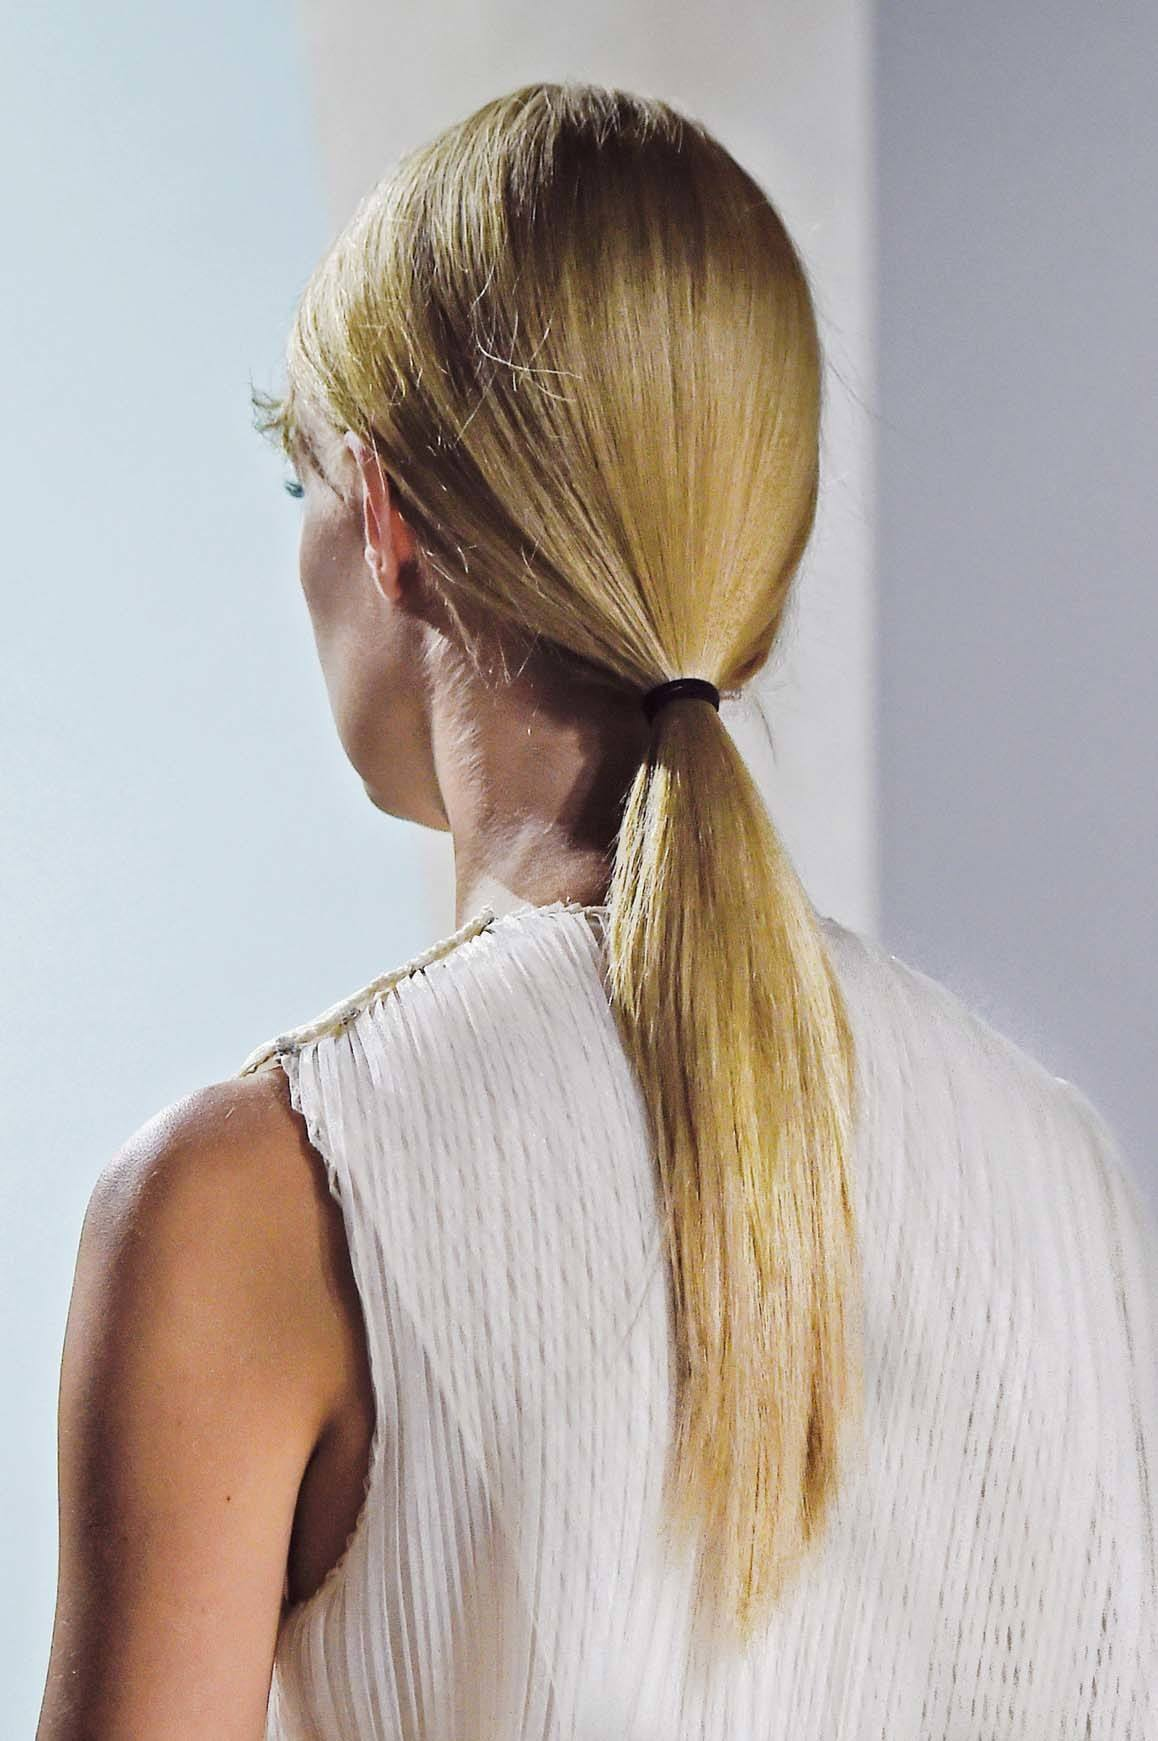 New Hair Trends include low effortless ponytails.